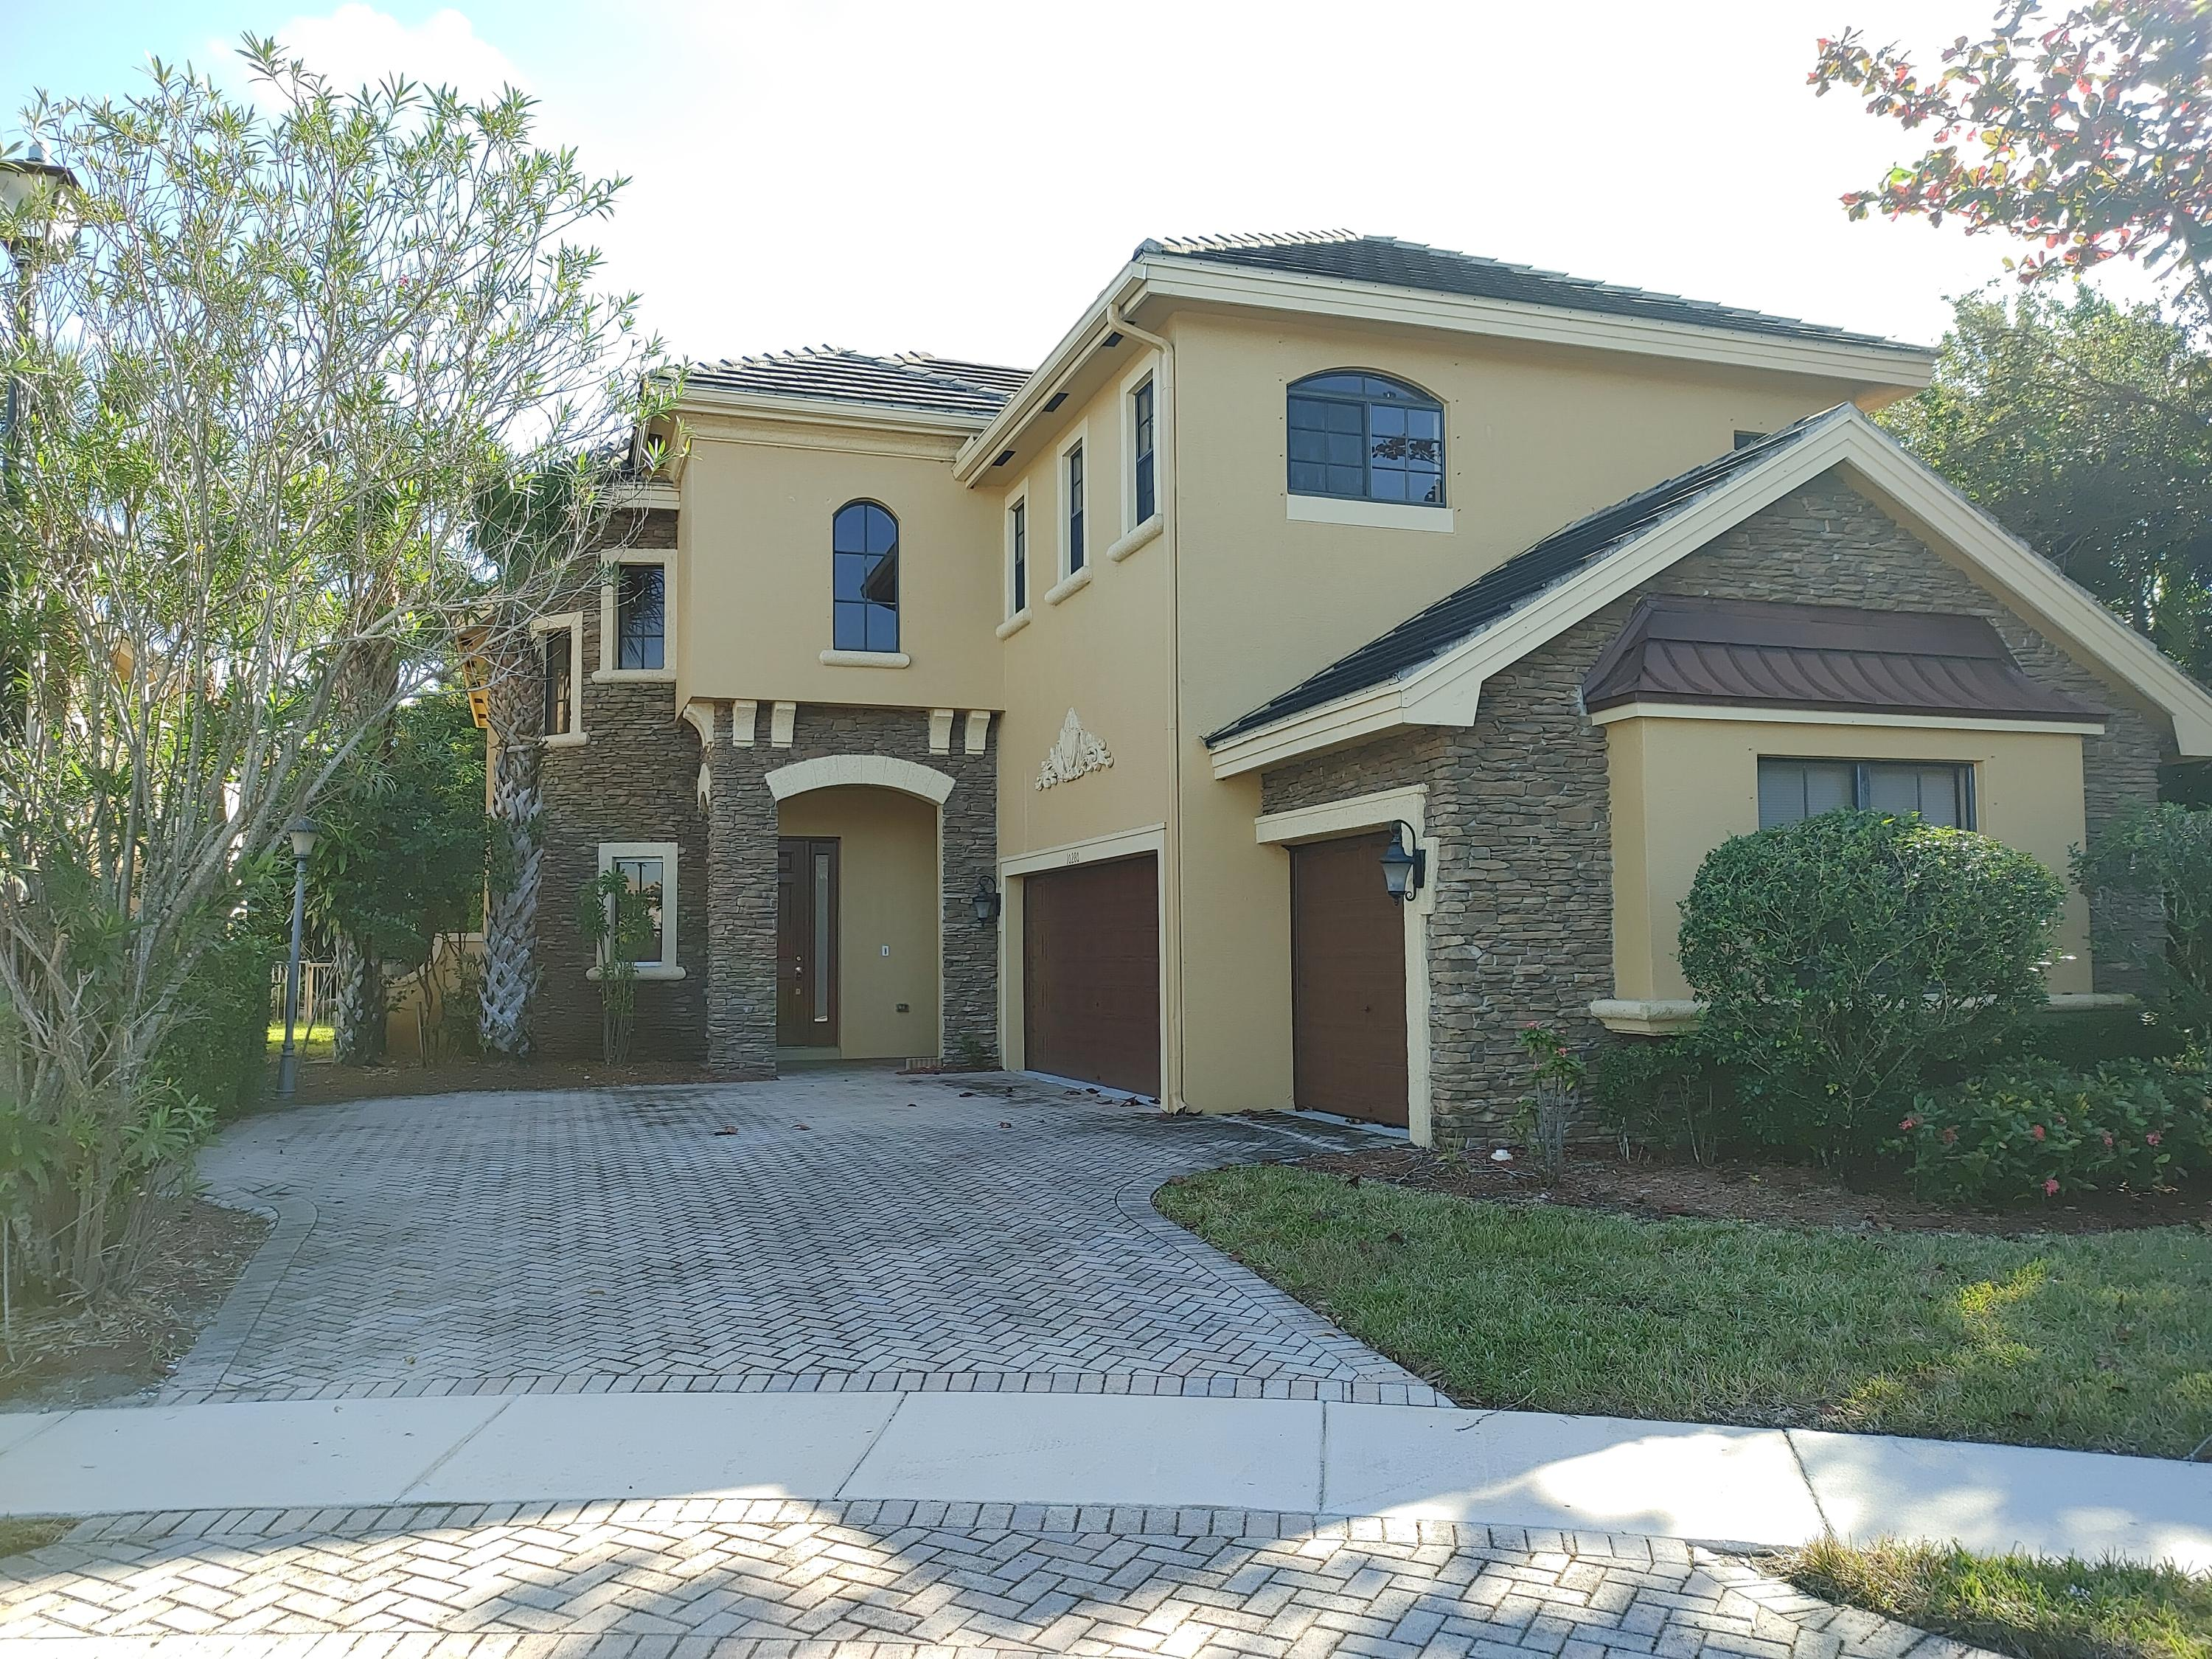 10280 Medicis Place - 33449 - FL - Wellington